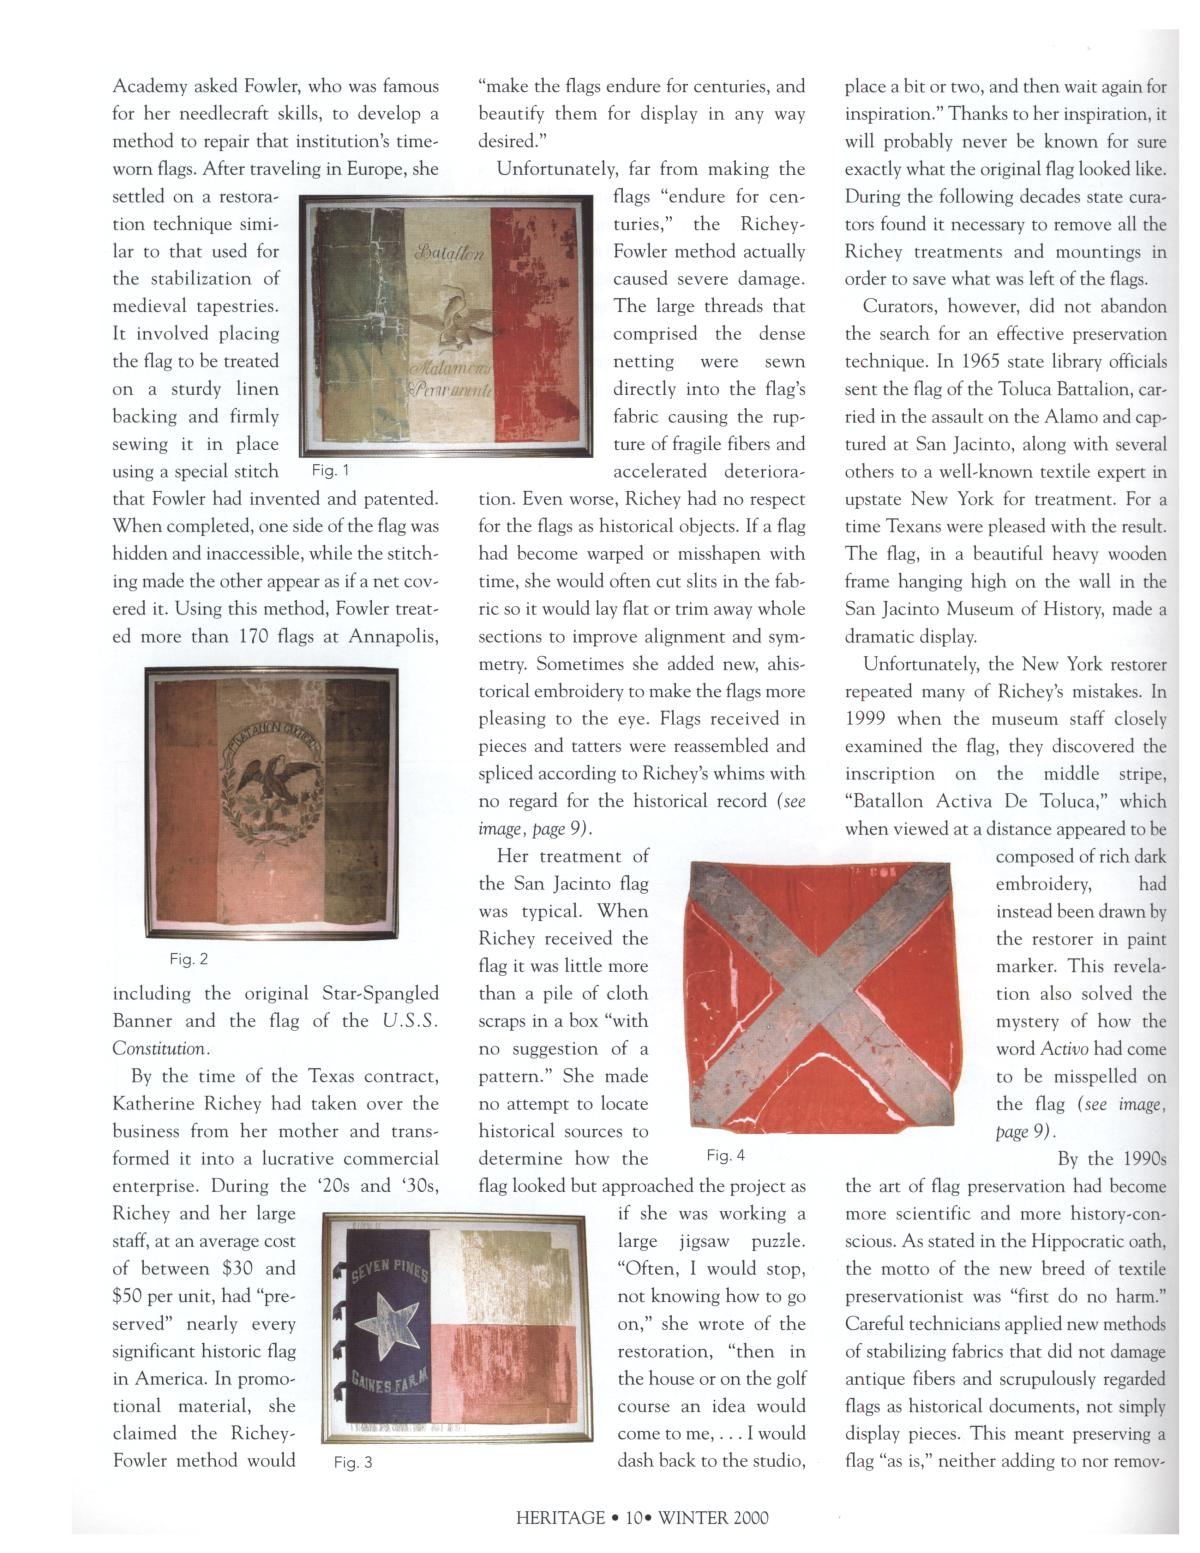 Heritage, Volume 18, Number 1, Winter 2000                                                                                                      10